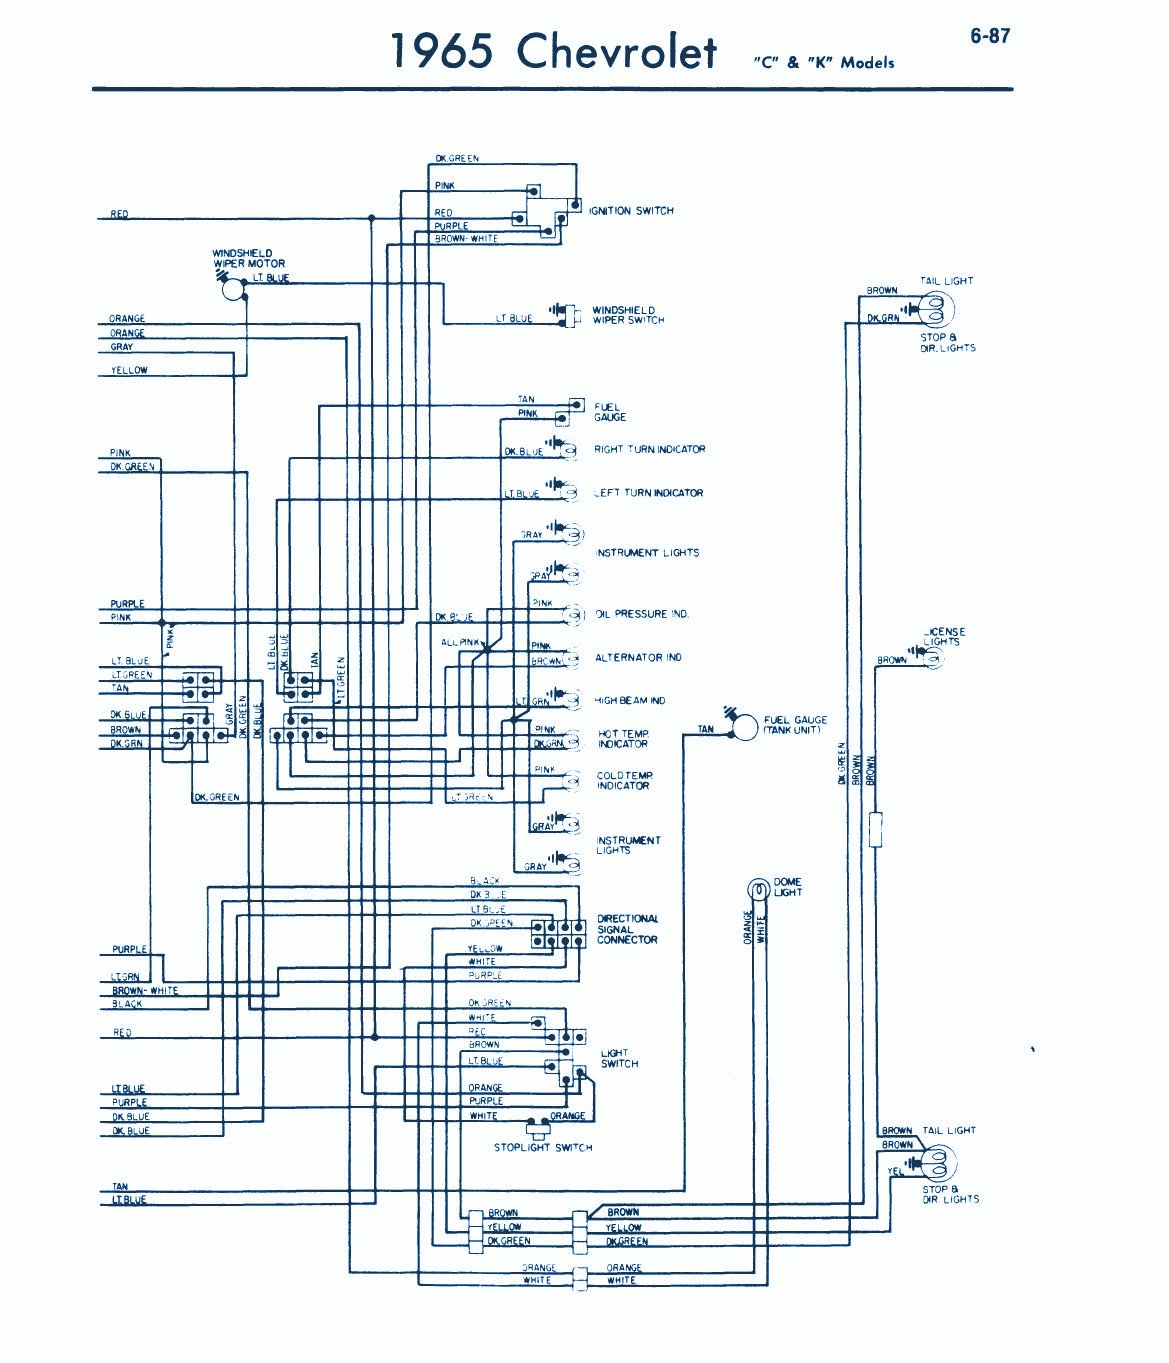 chevrolet ignition wiring diagram chevrolet wiring diagrams 1965 chevrolet wiring diagram chevrolet ignition